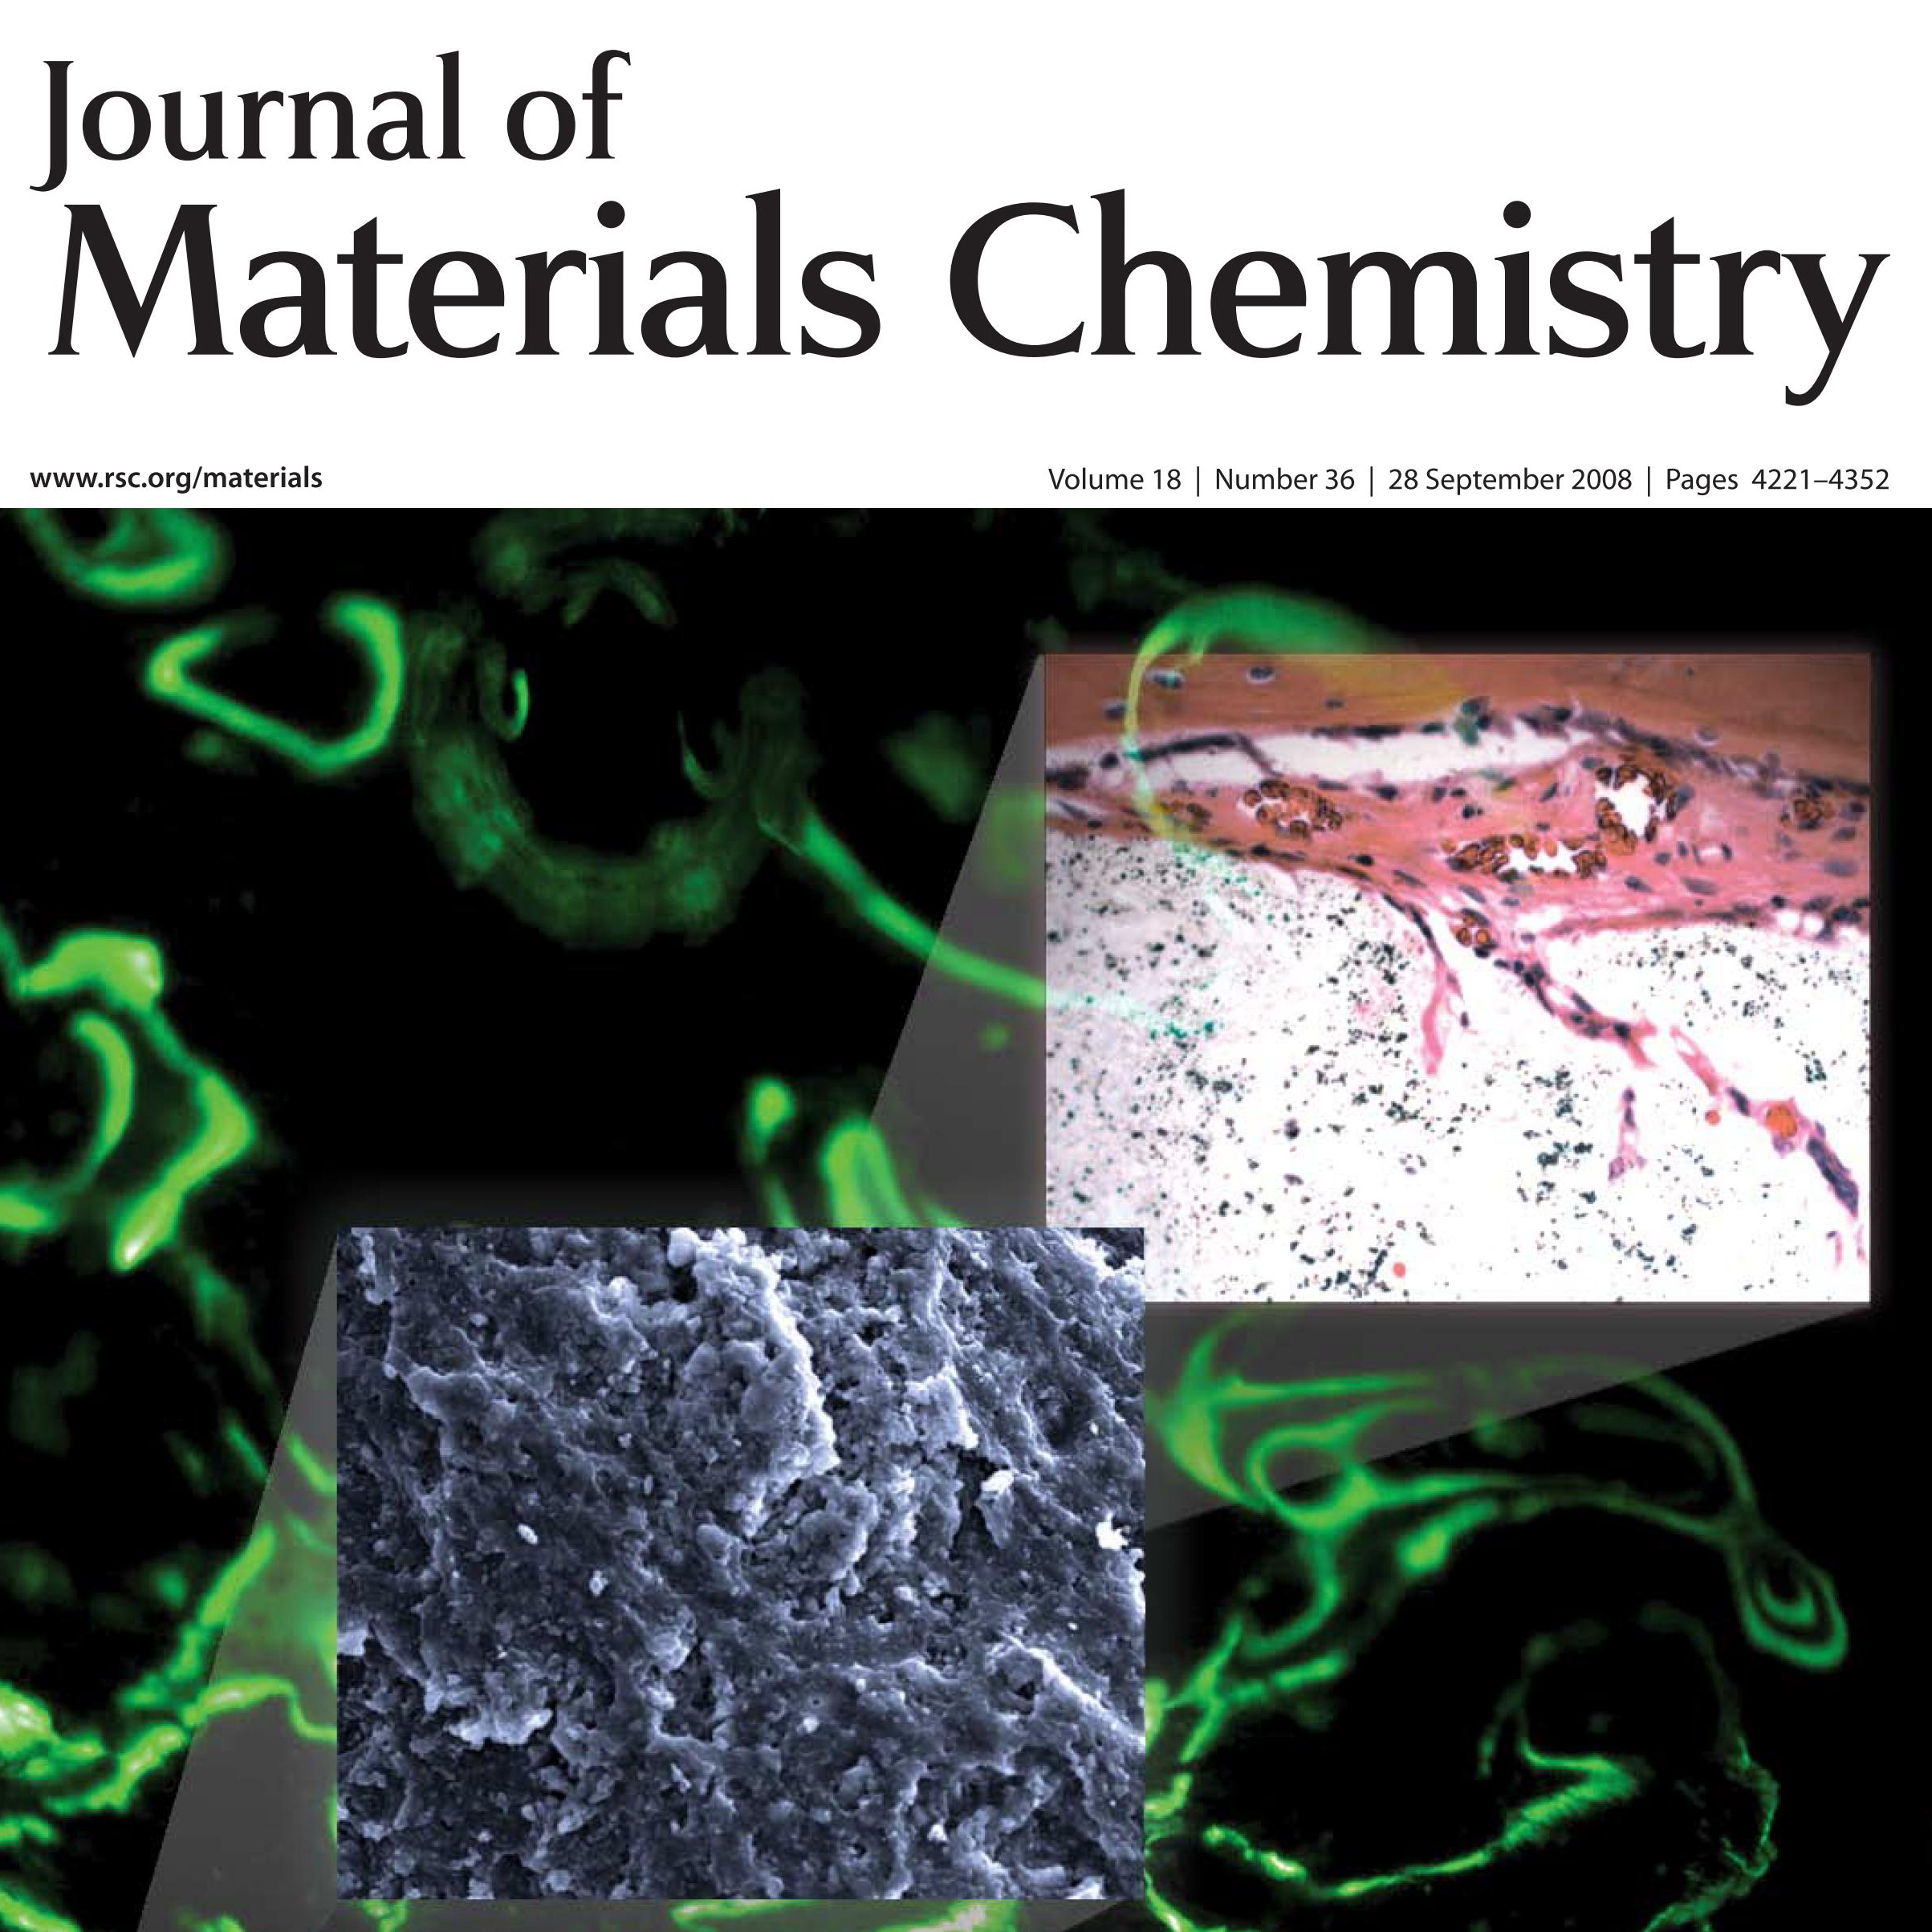 Micah Rogel, <em>Journal of Materials Chemistry</em>, 2008 Cove